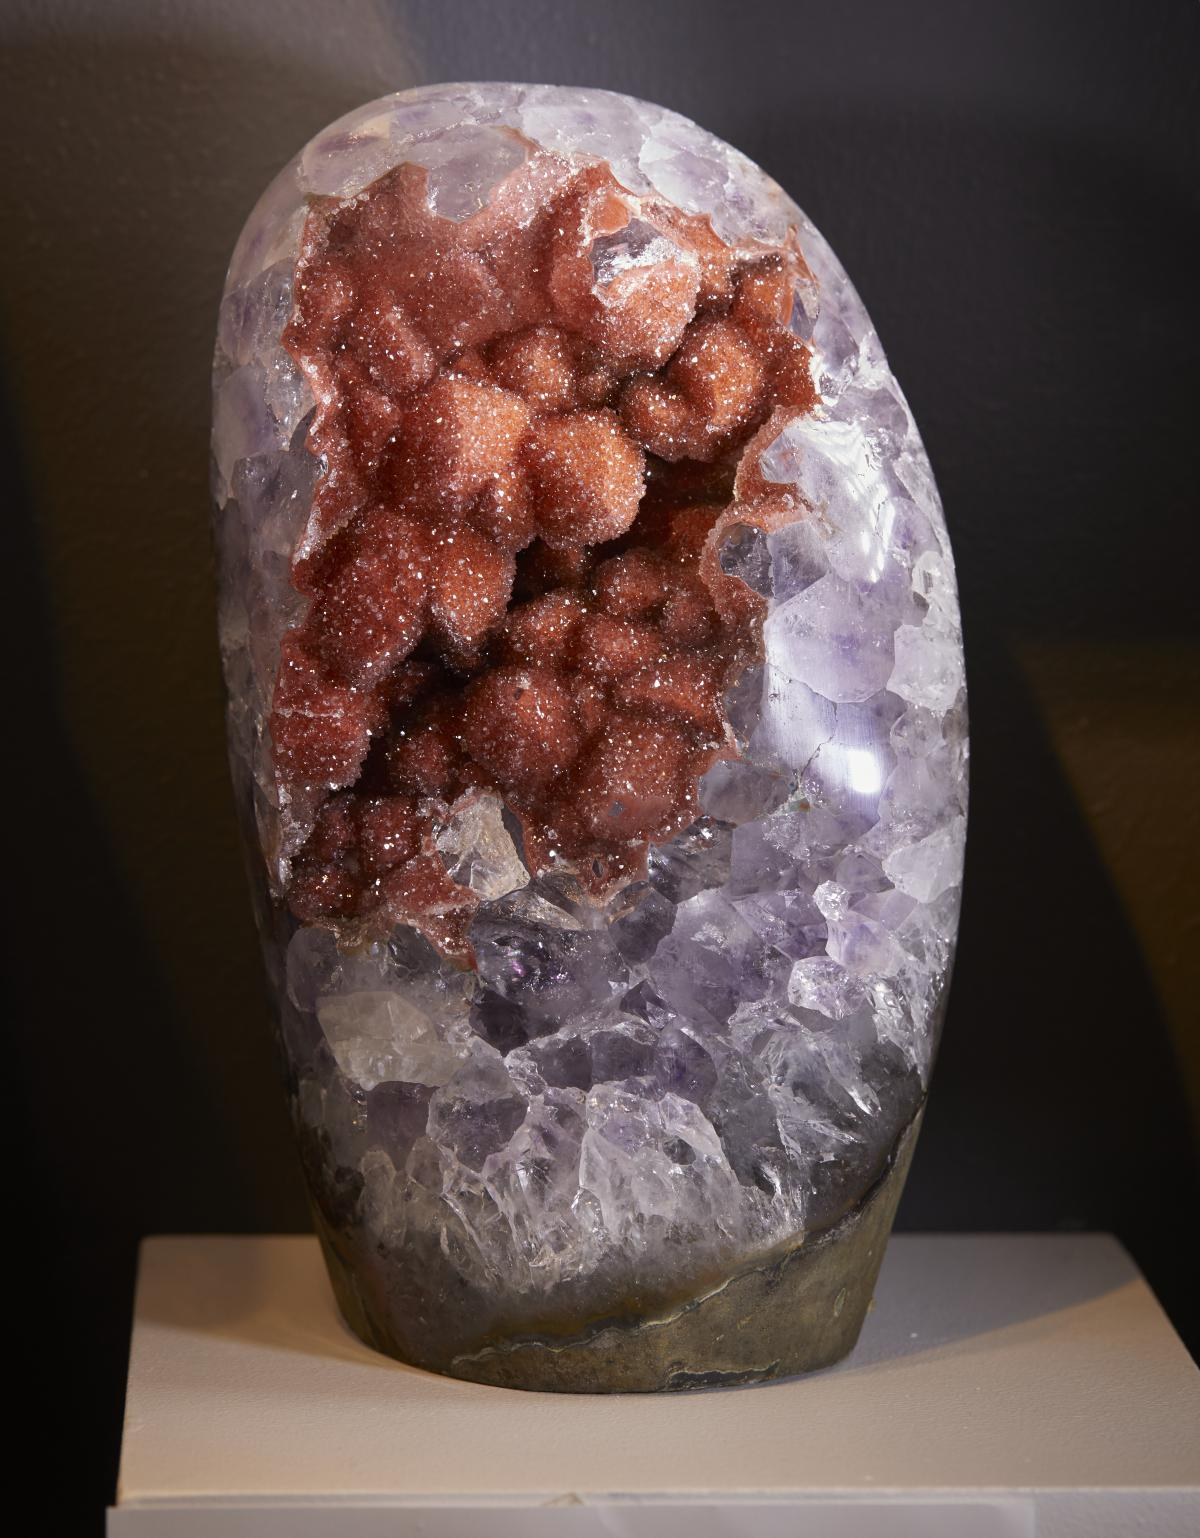 STUNNING AMETHYST & RED DRUZE STALACTITE FORMATIONS SURROUNDED